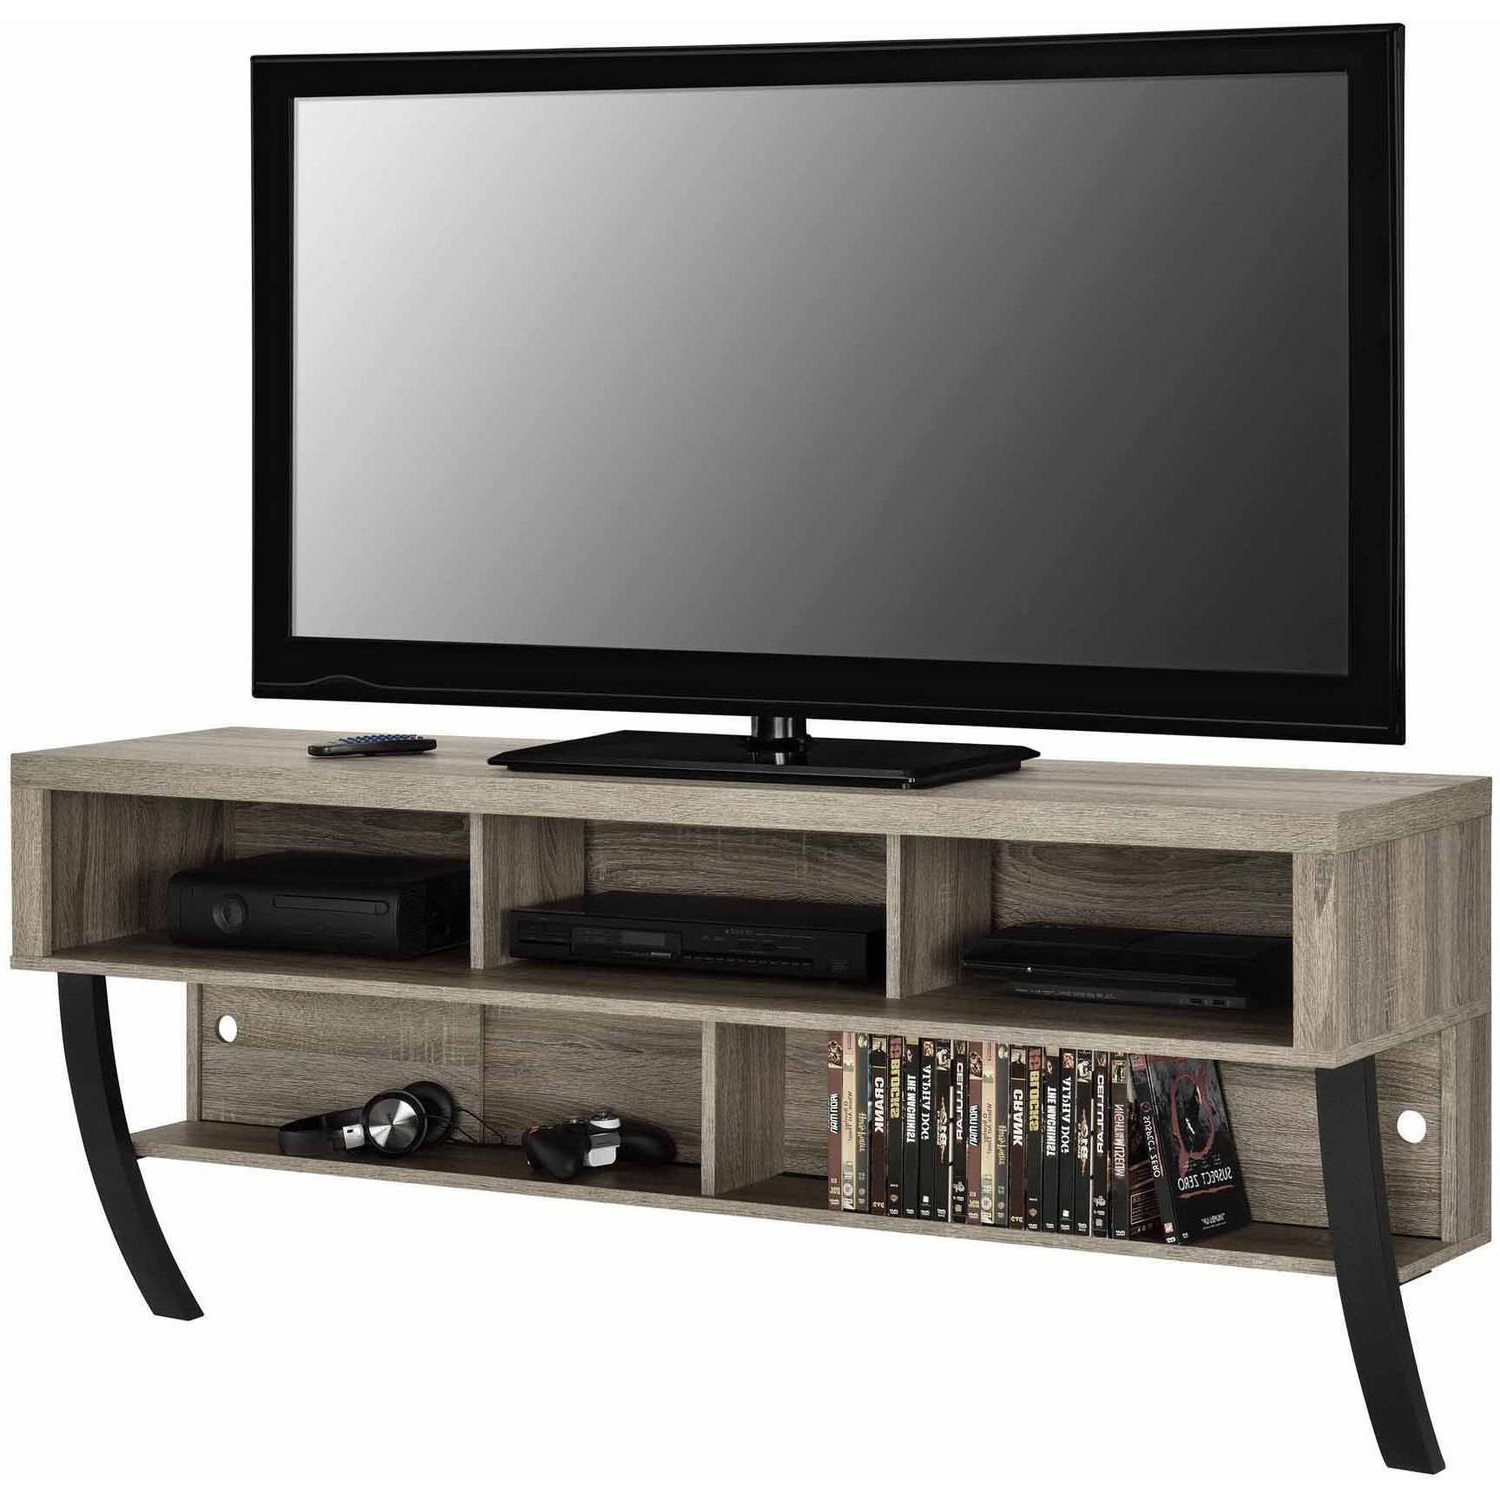 """Altra Asher Wall Mounted 65"""" Tv Stand, Black Oak Regarding Fashionable Tv Stands With Back Panel (View 17 of 20)"""